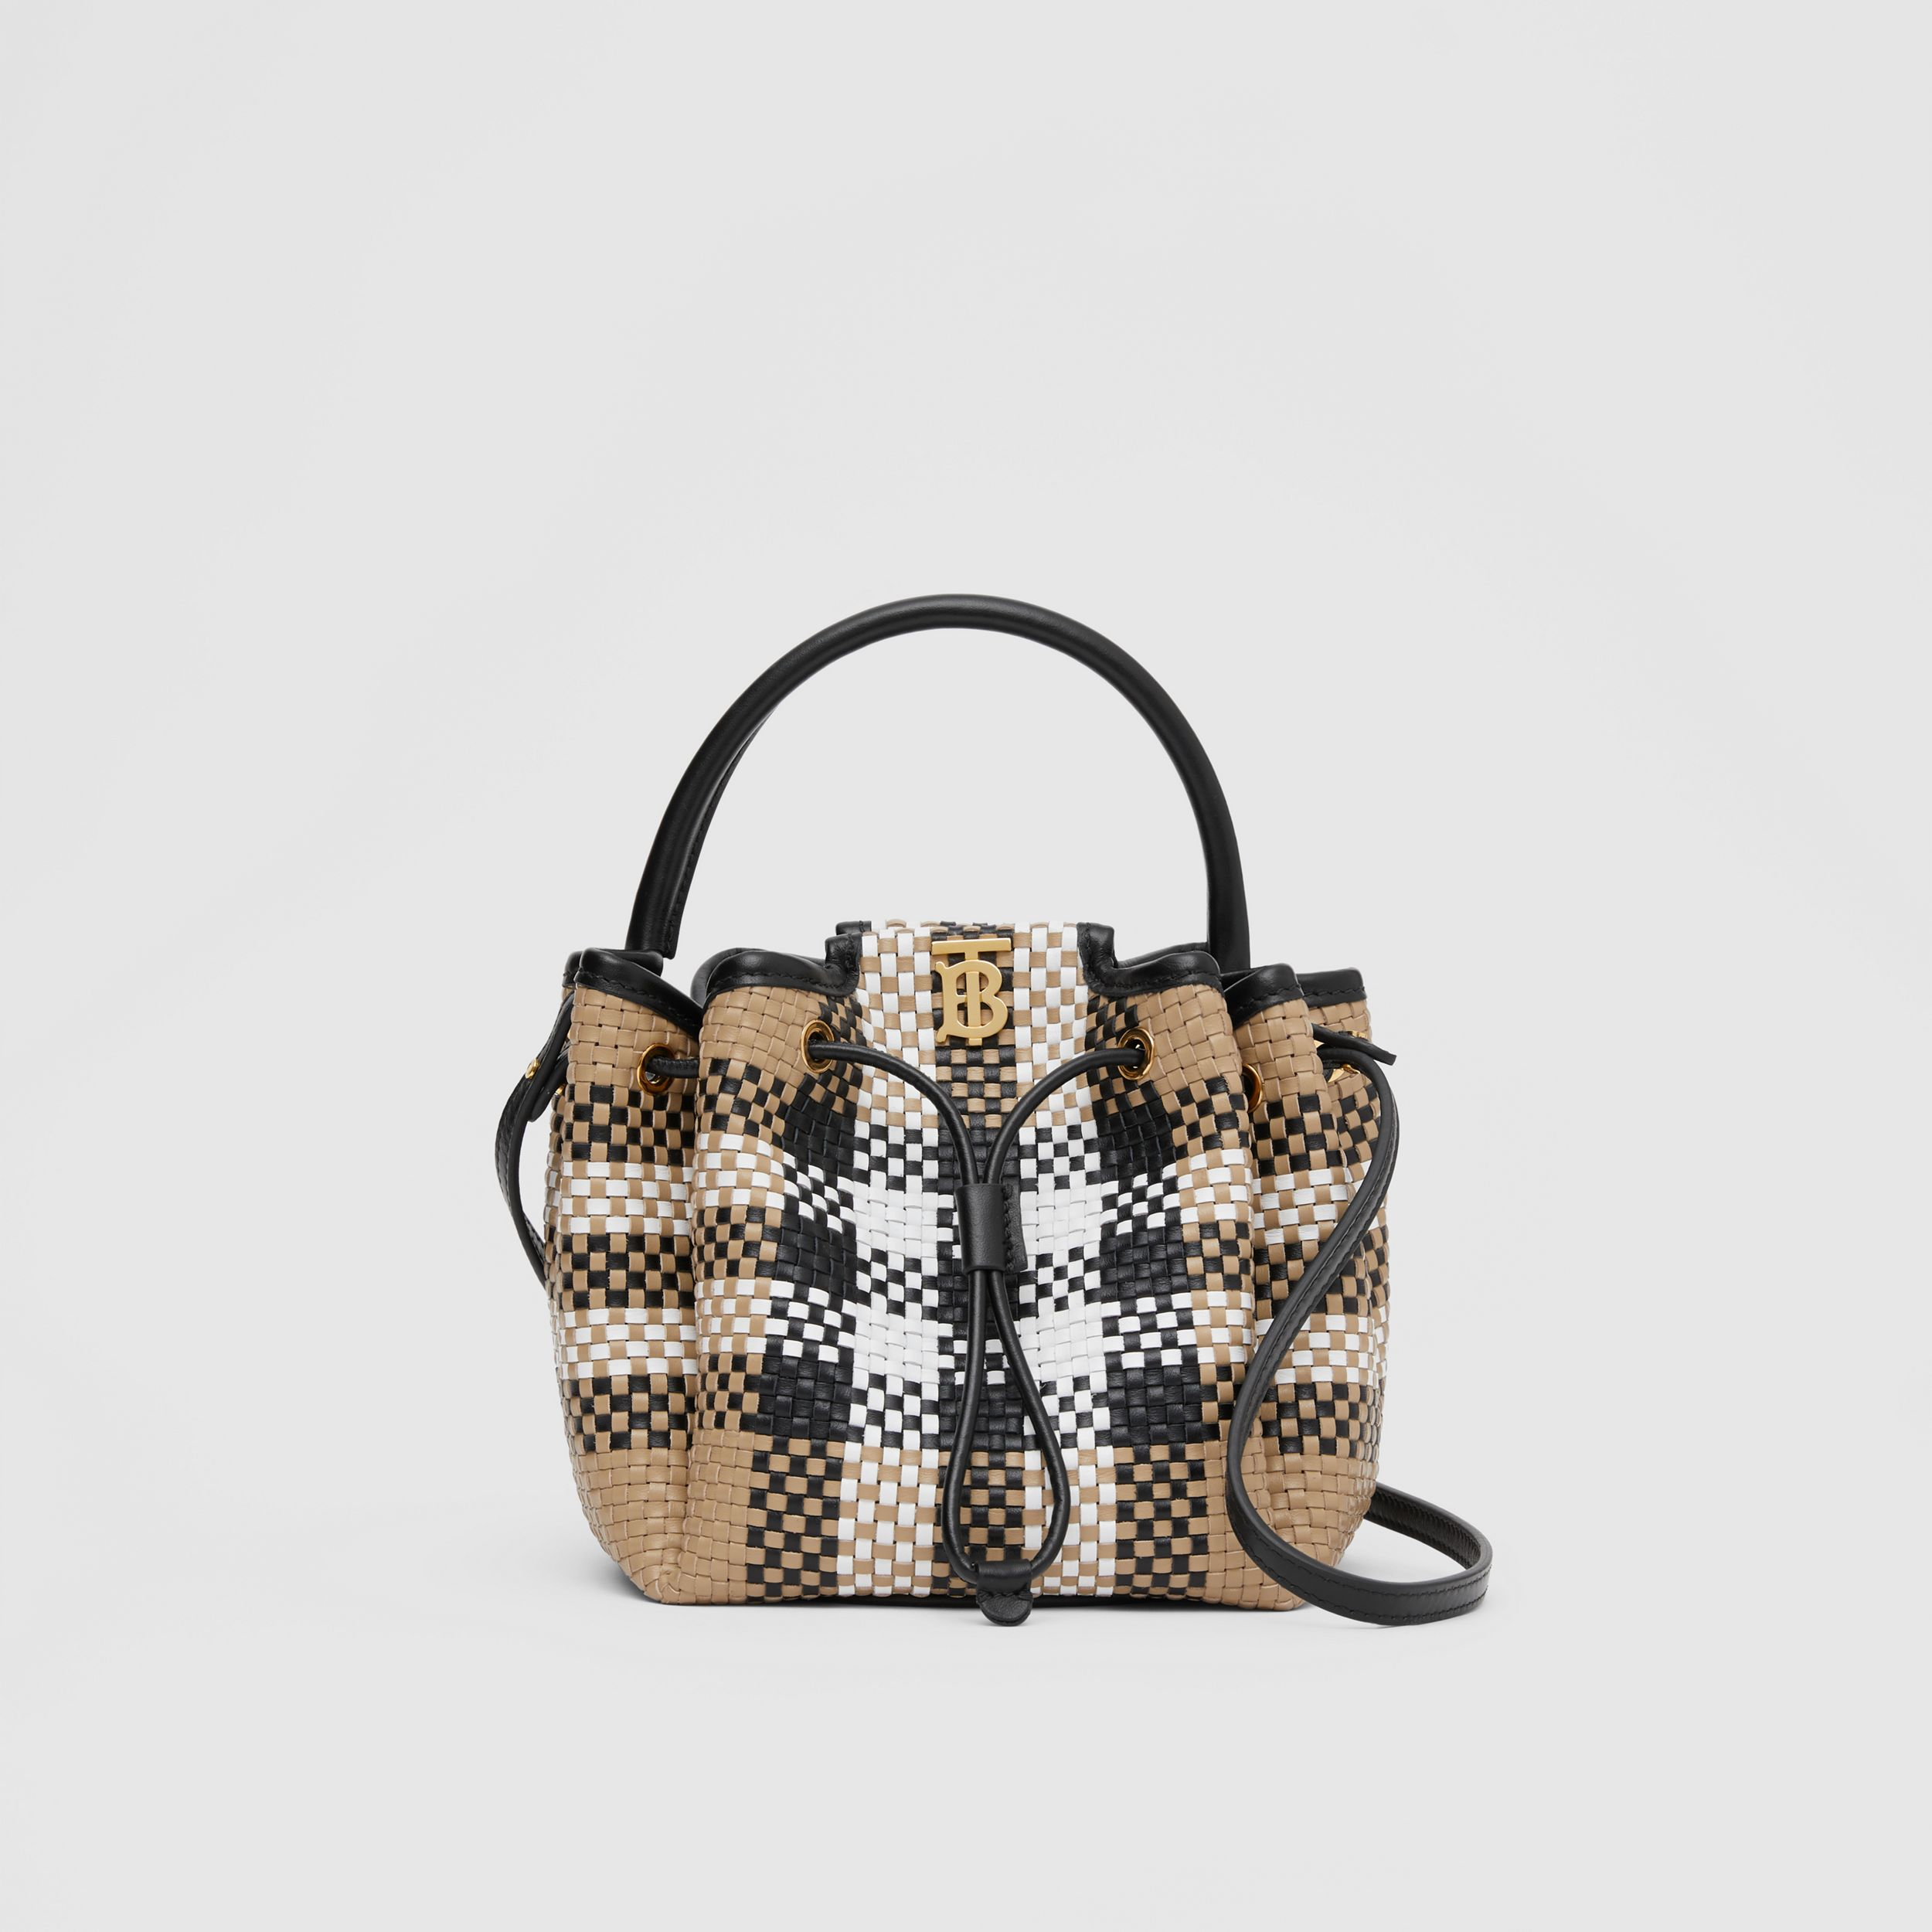 Monogram Motif Latticed Leather Bucket Bag in Archive Beige - Women | Burberry - 1